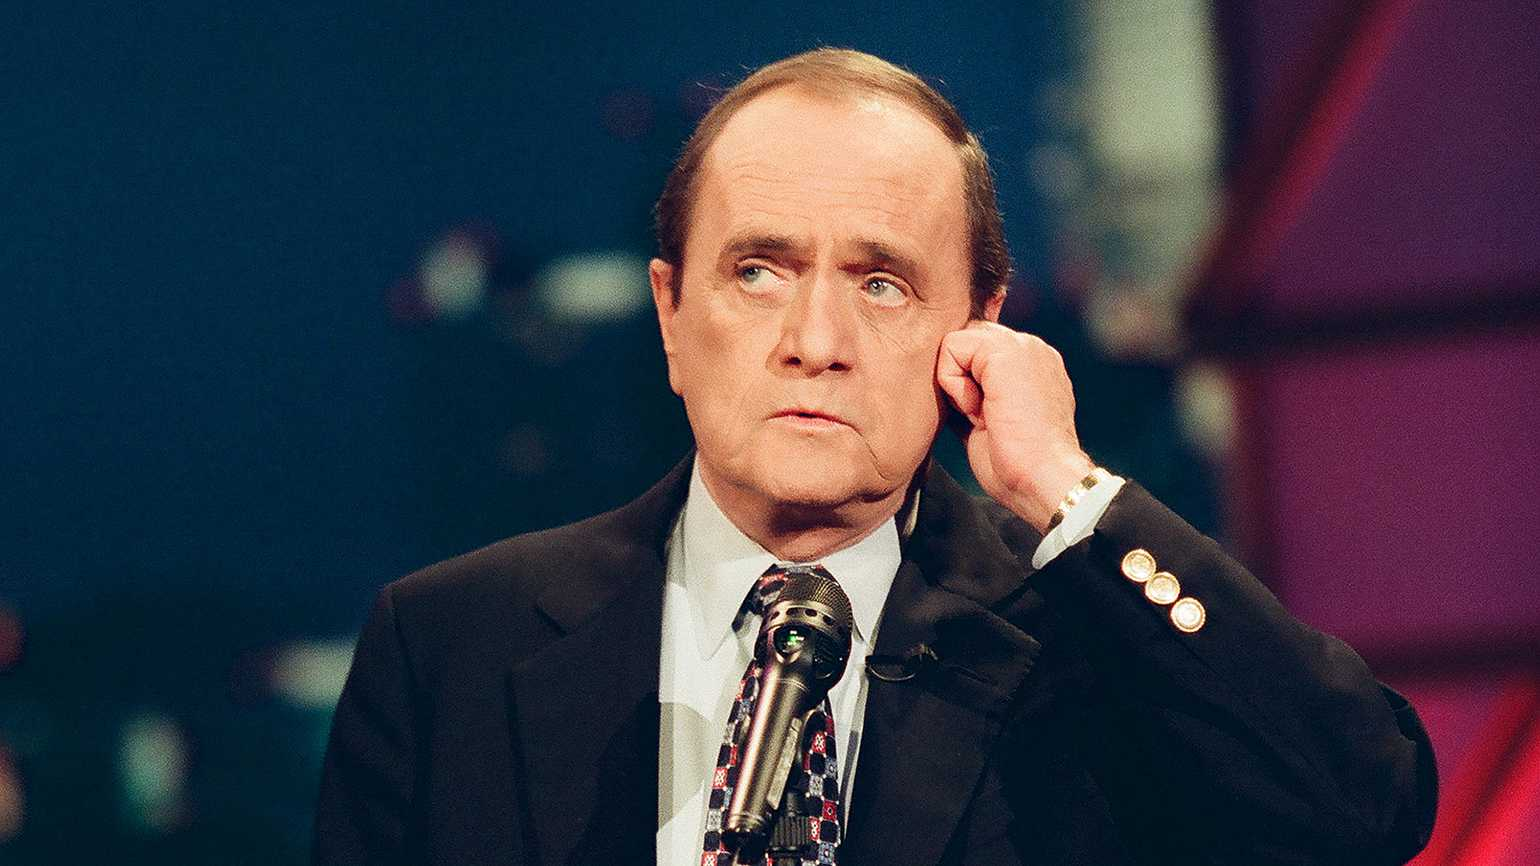 Comedian Bob Newhart performs one of his famous phone-conversation comedy routines